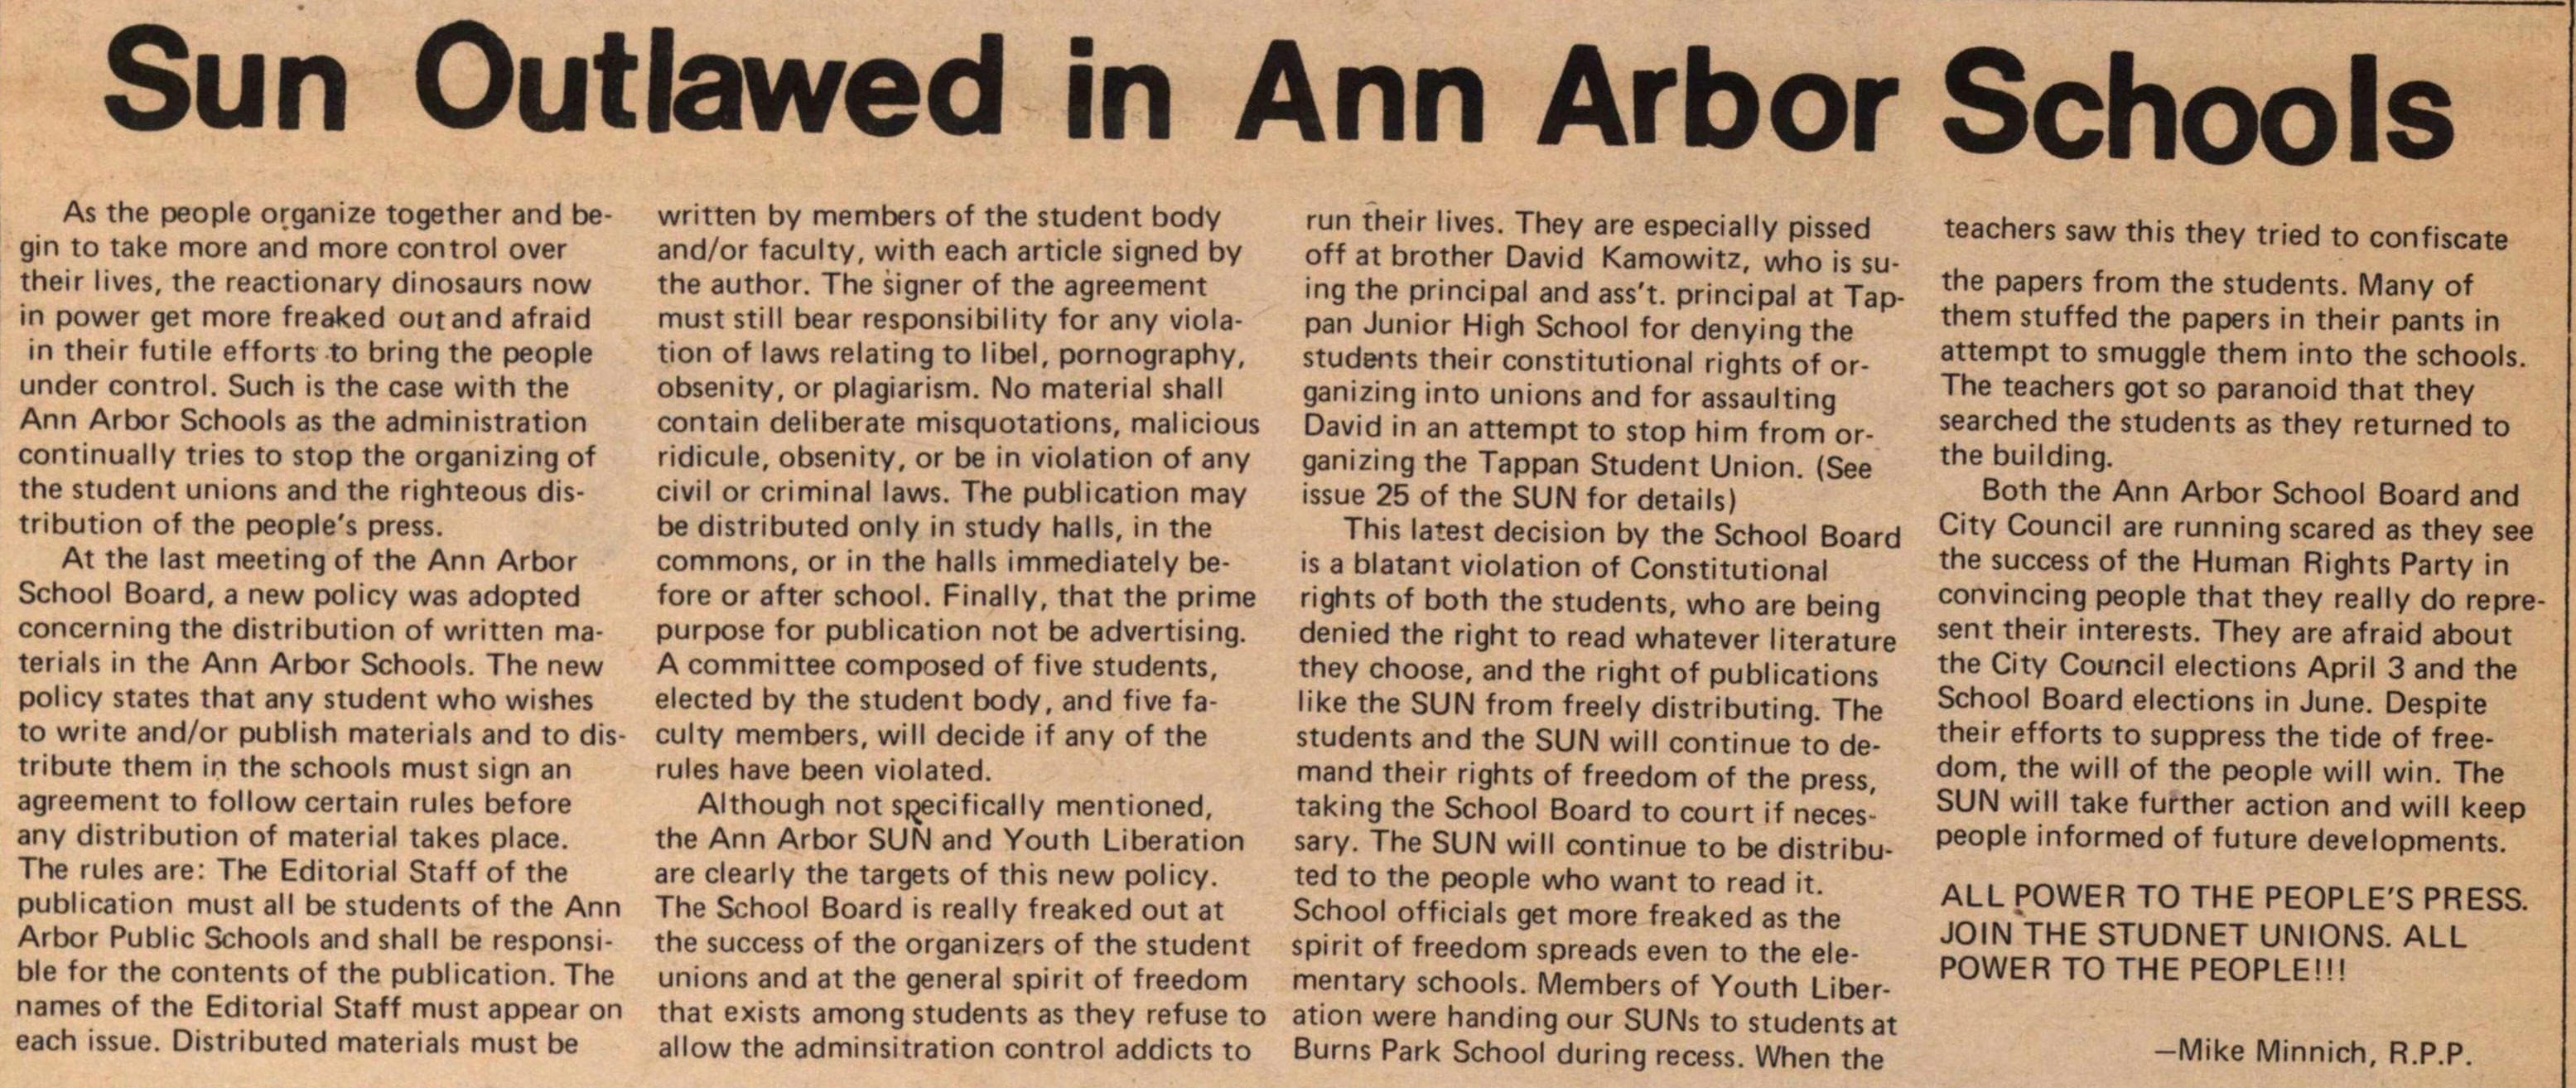 Sun Outlawed In Ann Arbor Schools image